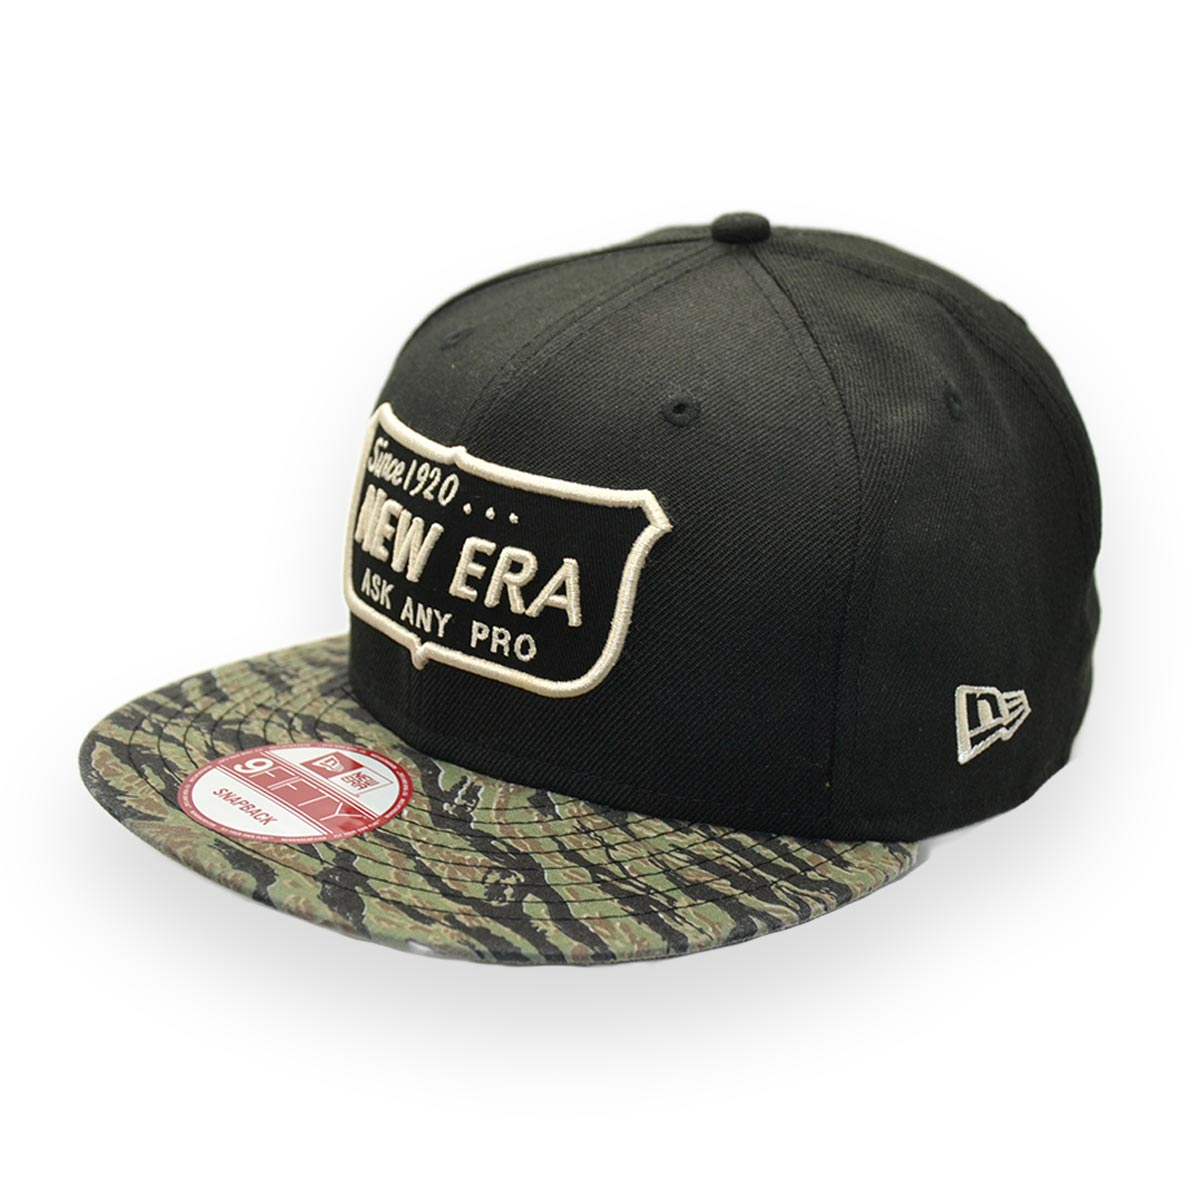 NEW ERA SINCE 1920 ASK ANY PRO 9FIFTY BLACK CAMO SNAPBACK CAP  7716a3fae7d3